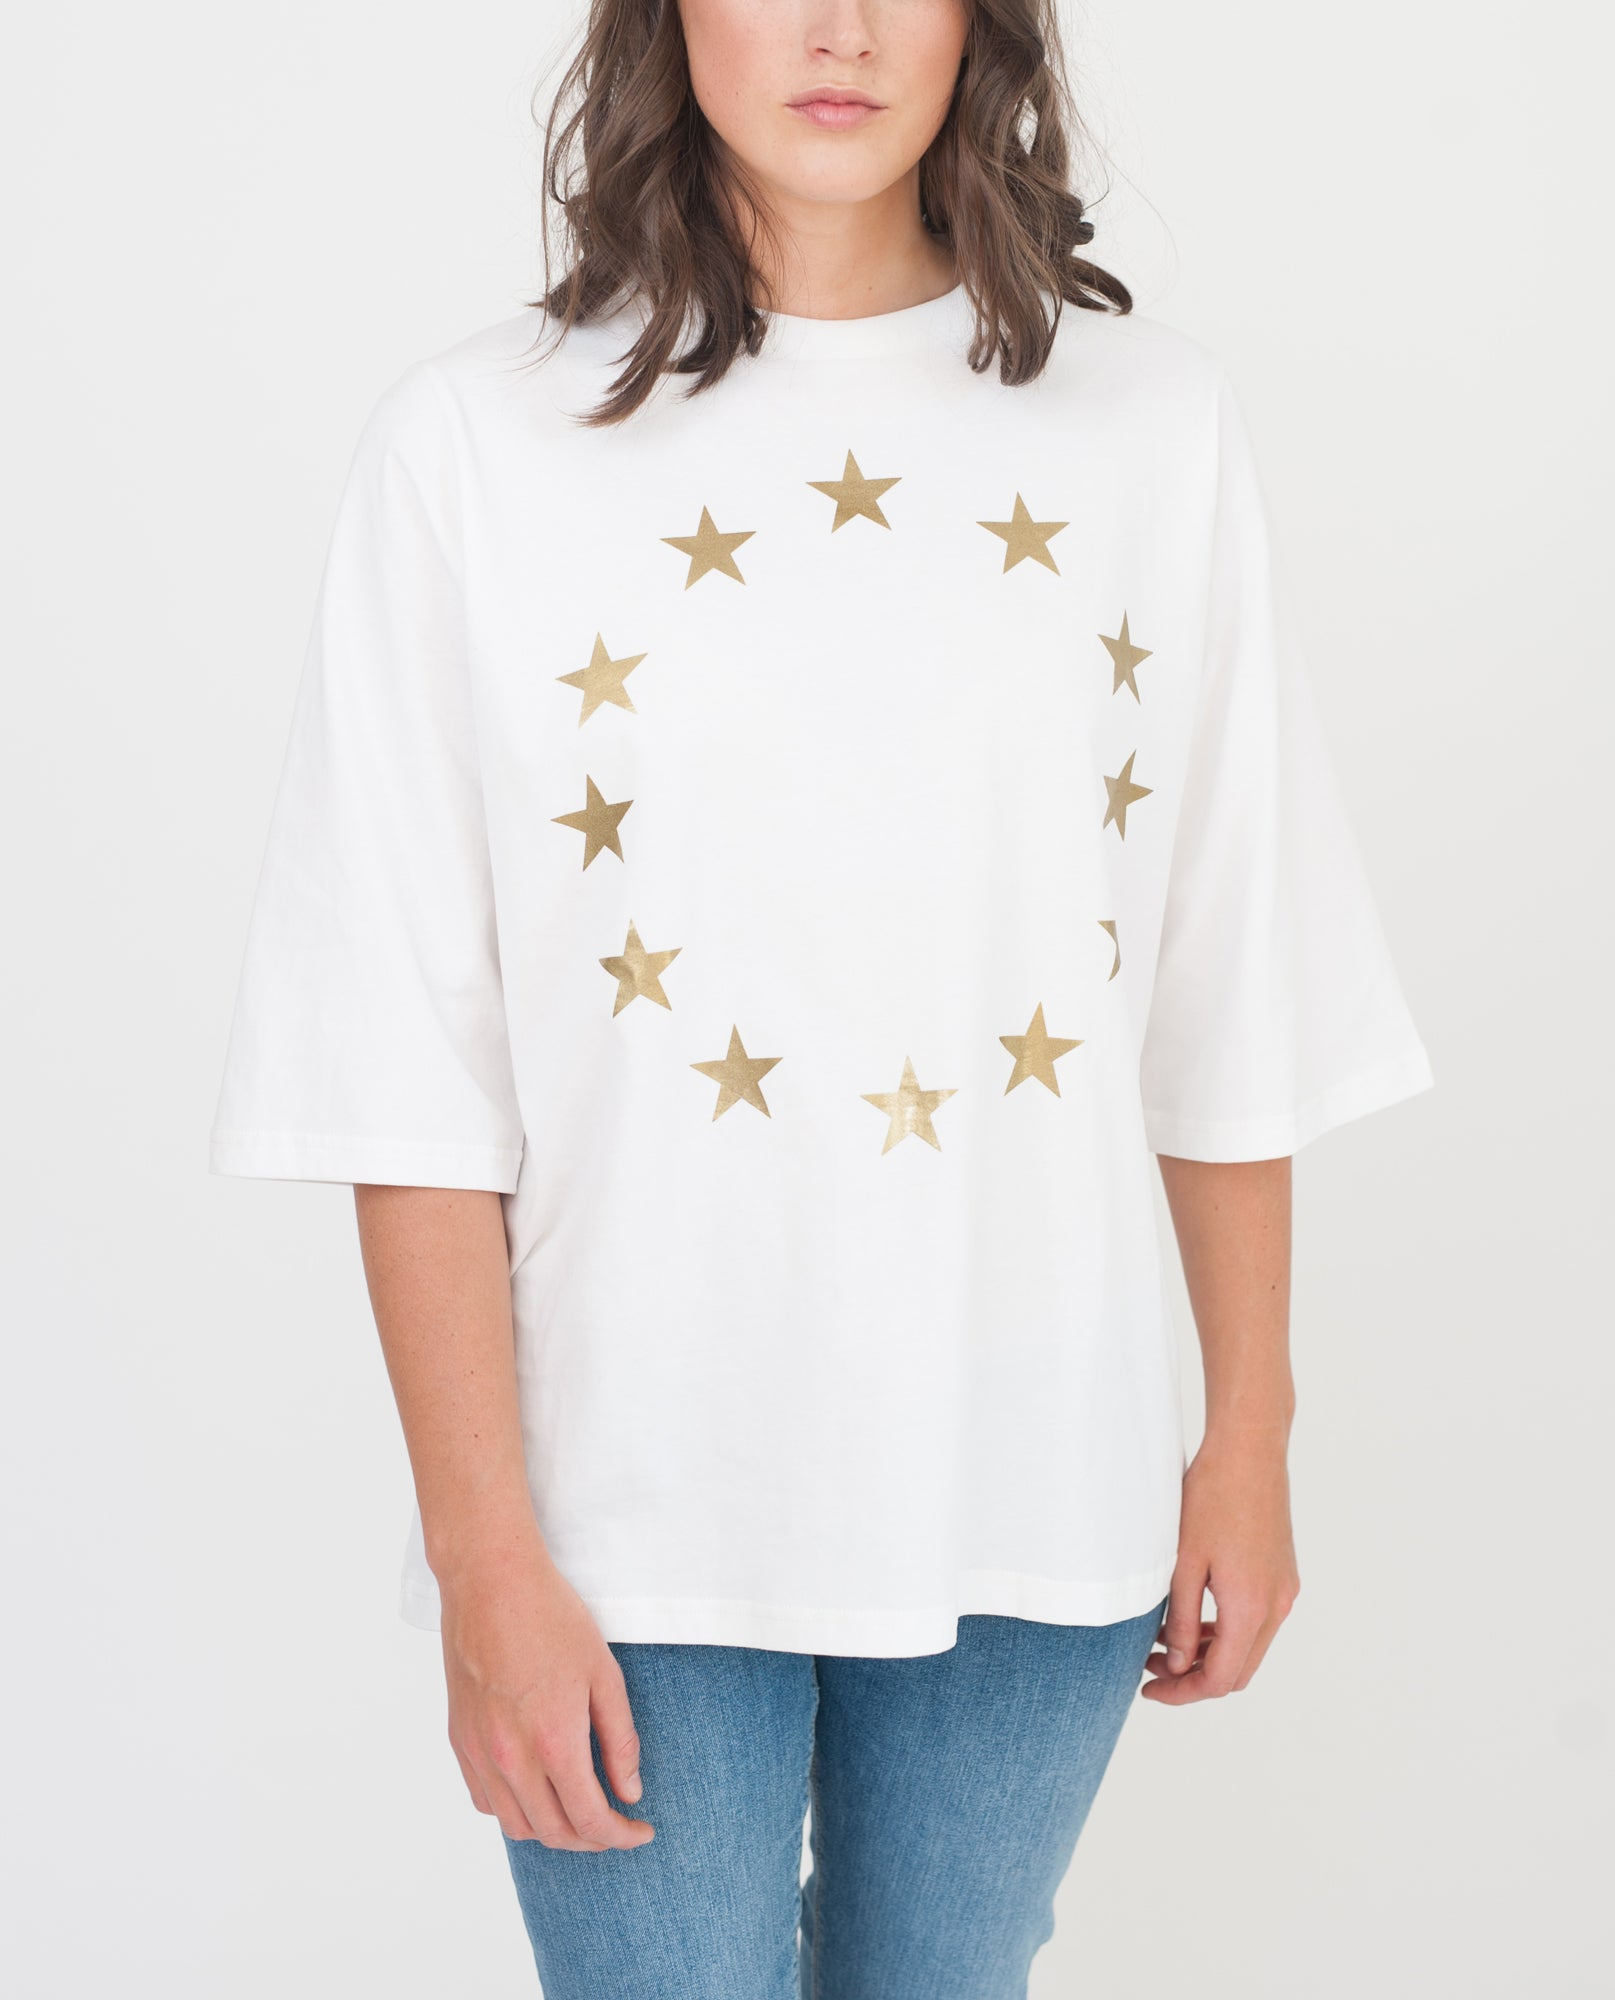 RYLAN Organic Cotton Print Tshirt In White And Gold